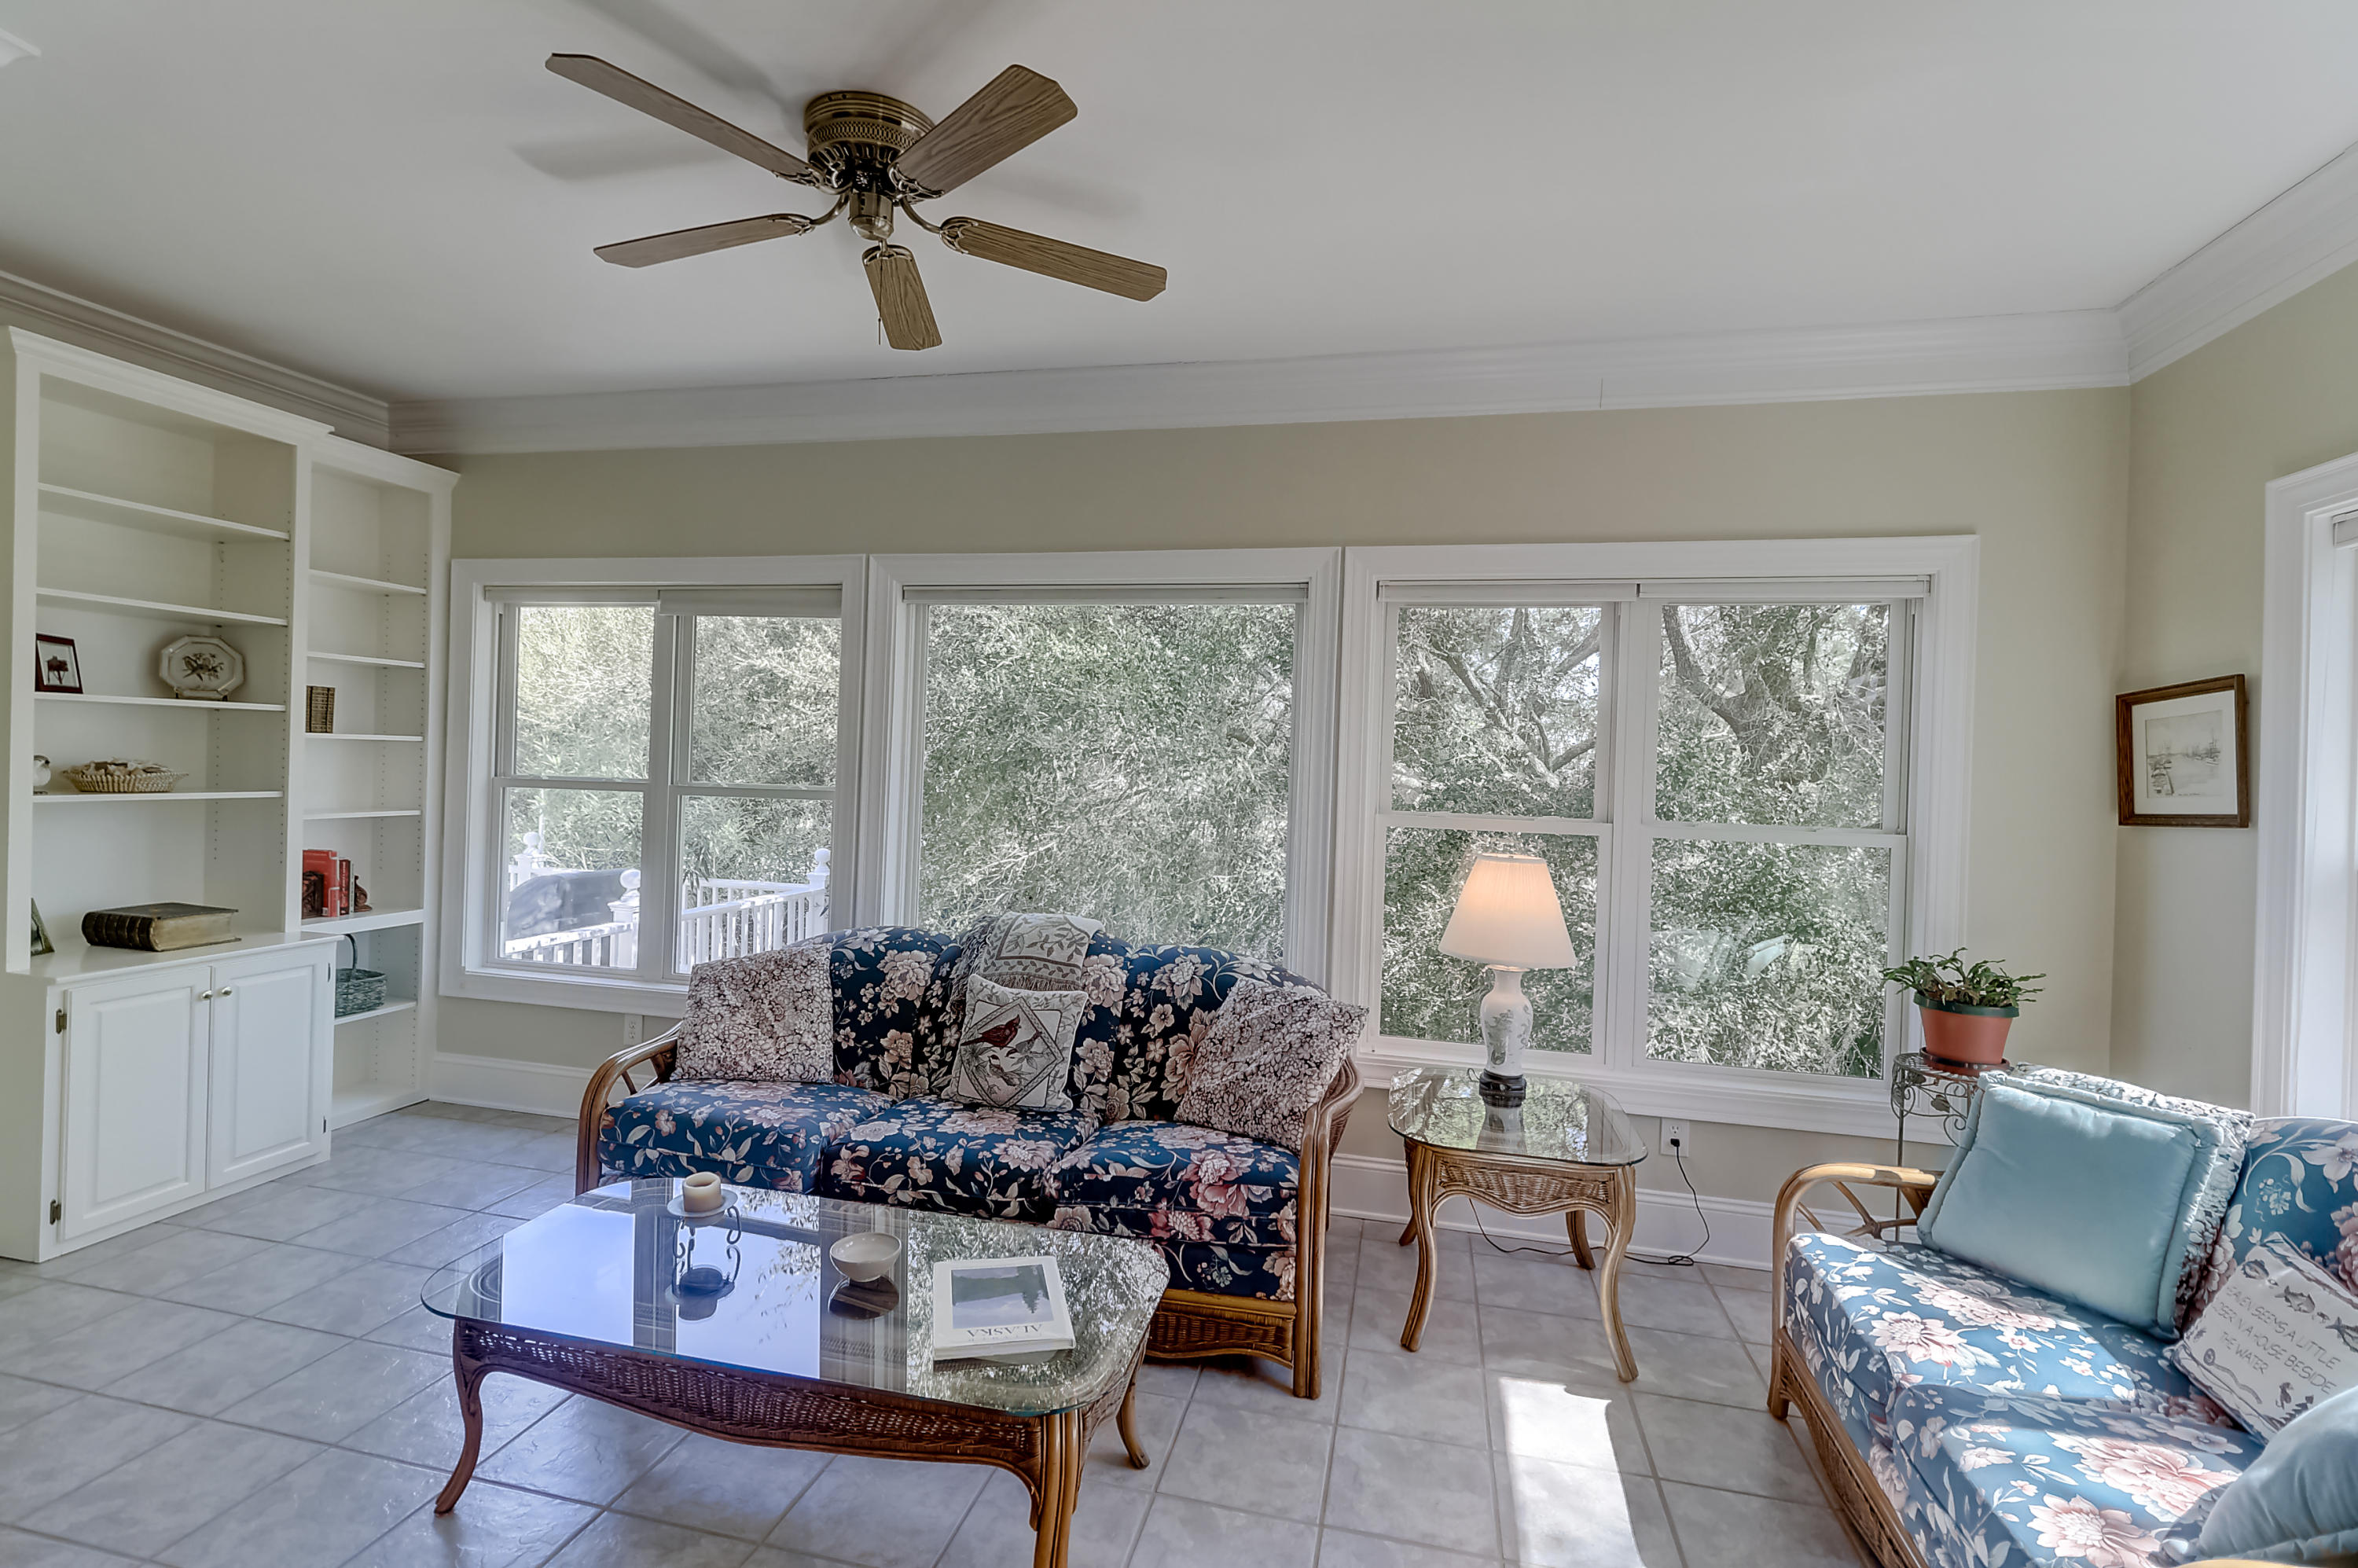 Stratton Place Homes For Sale - 1494 Stratton, Mount Pleasant, SC - 48